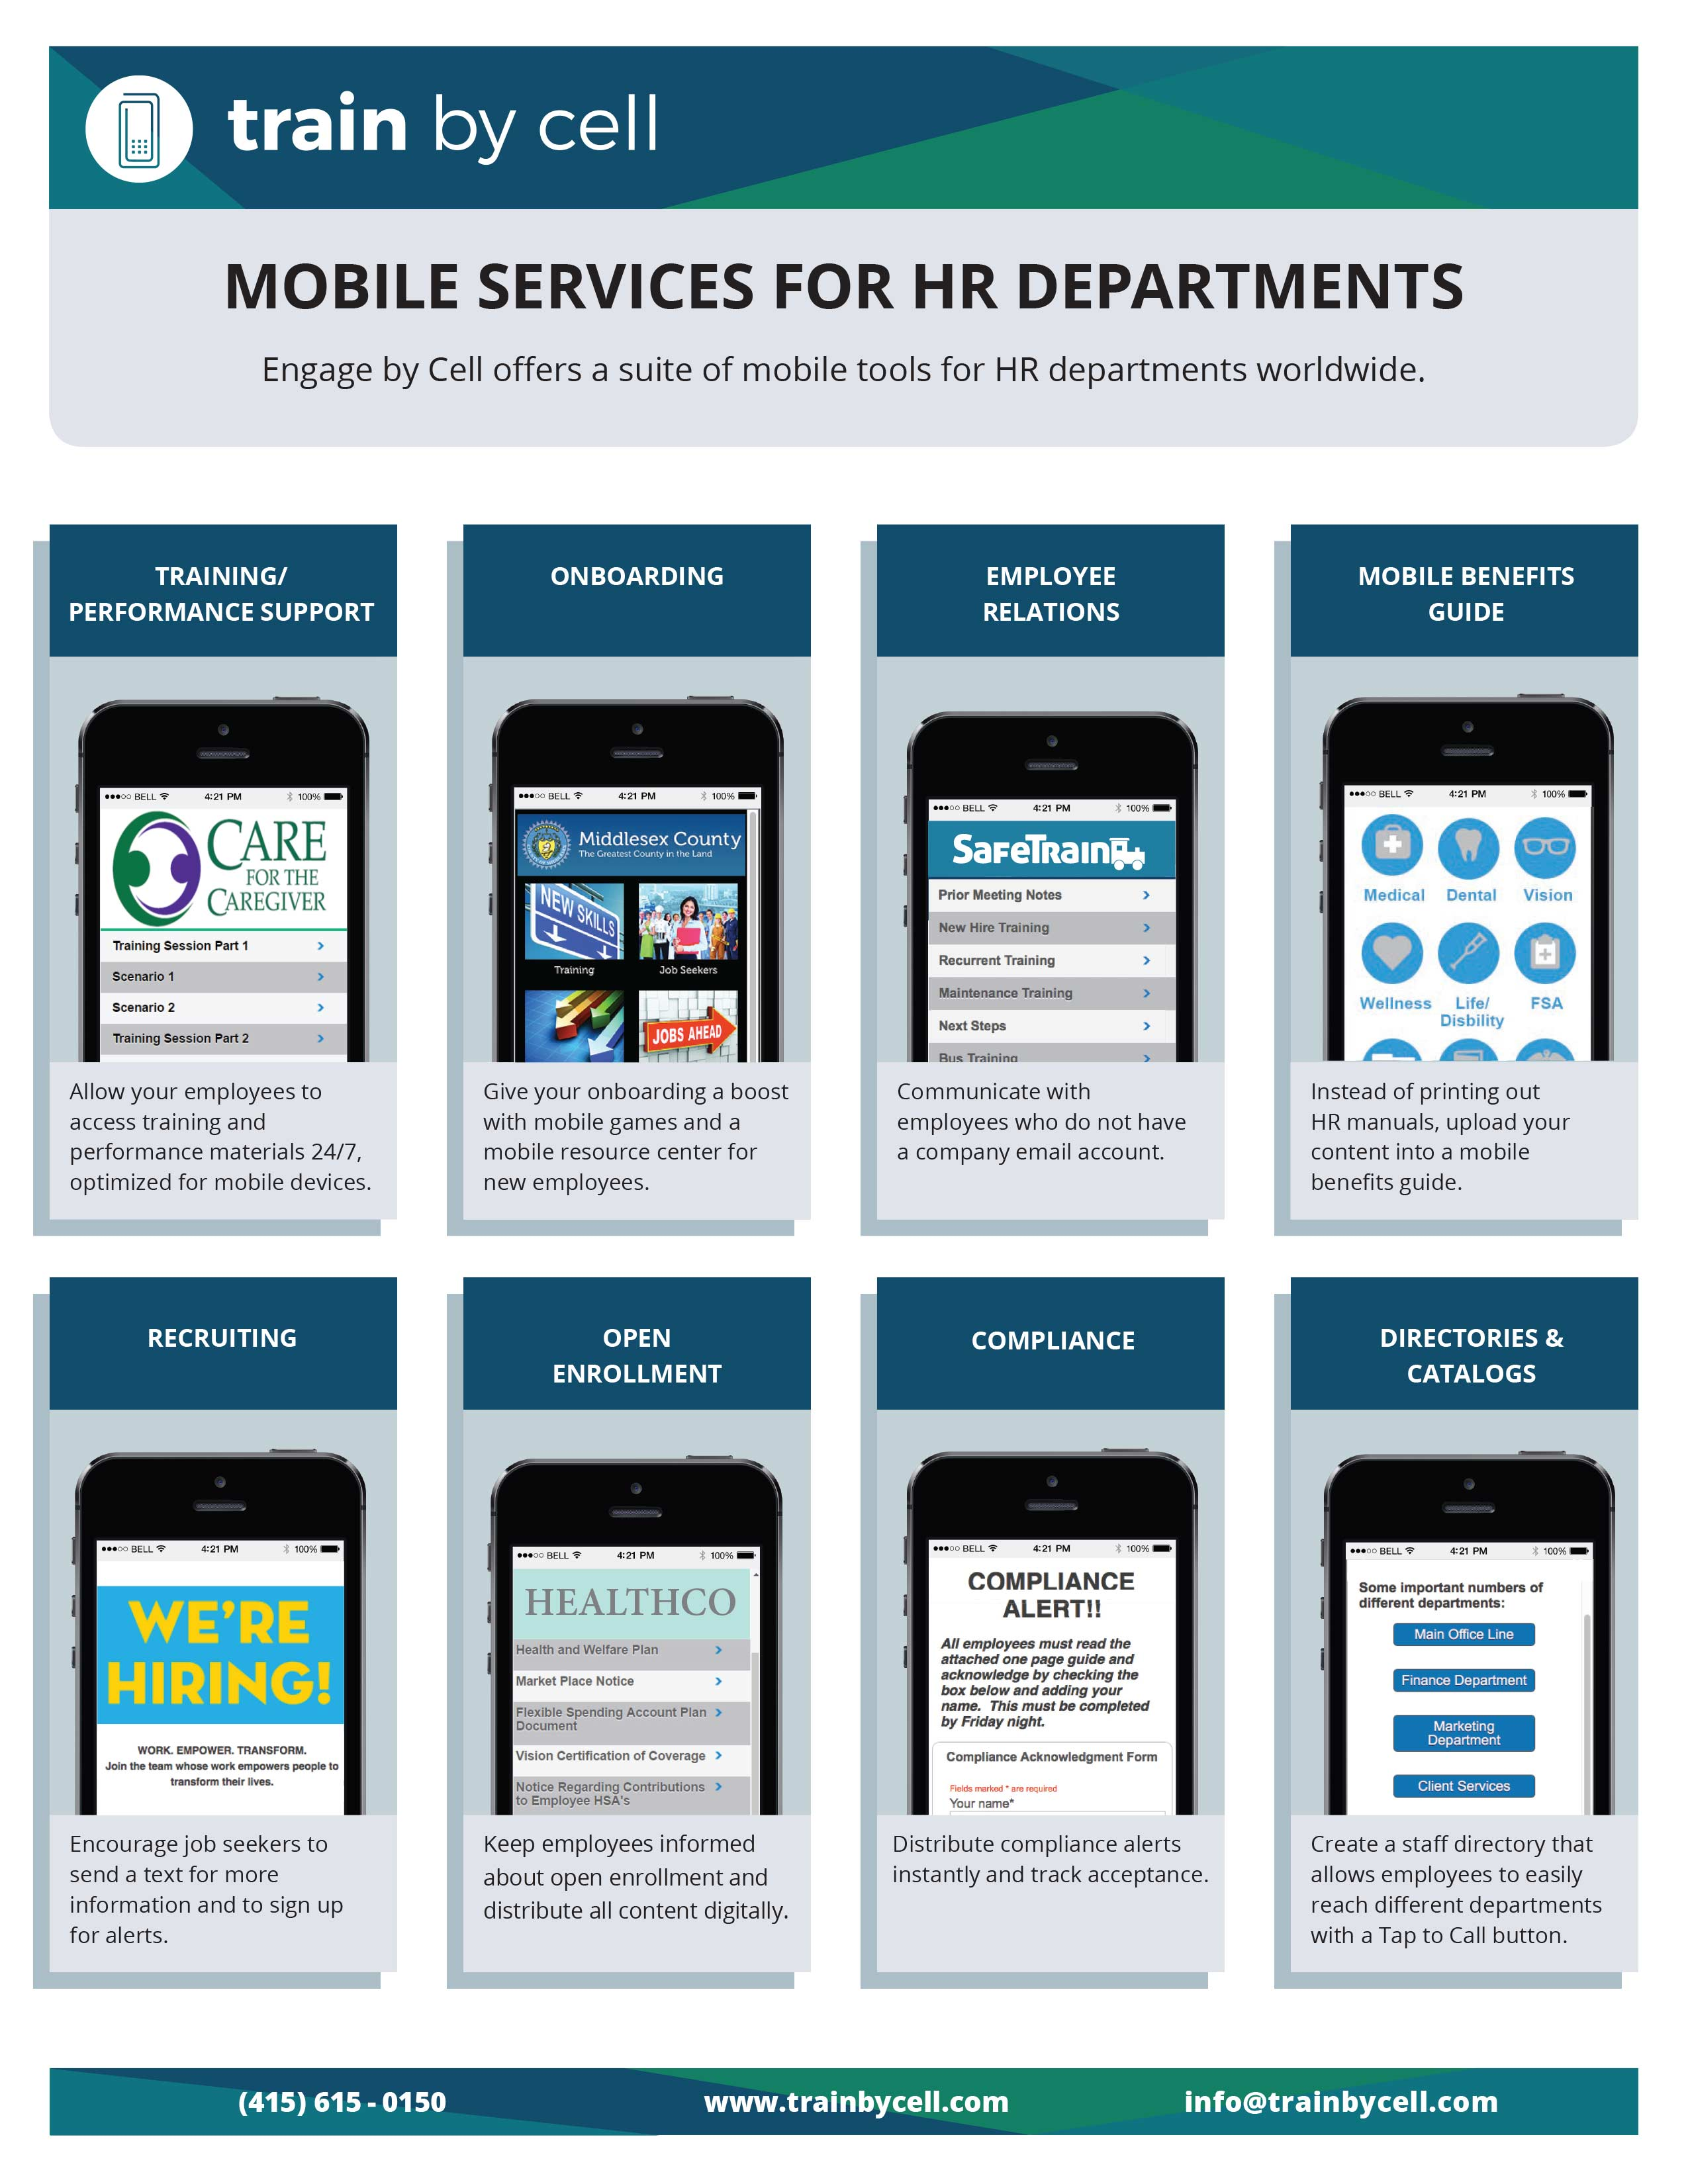 Train by Cell Mobile Service for HR Departments